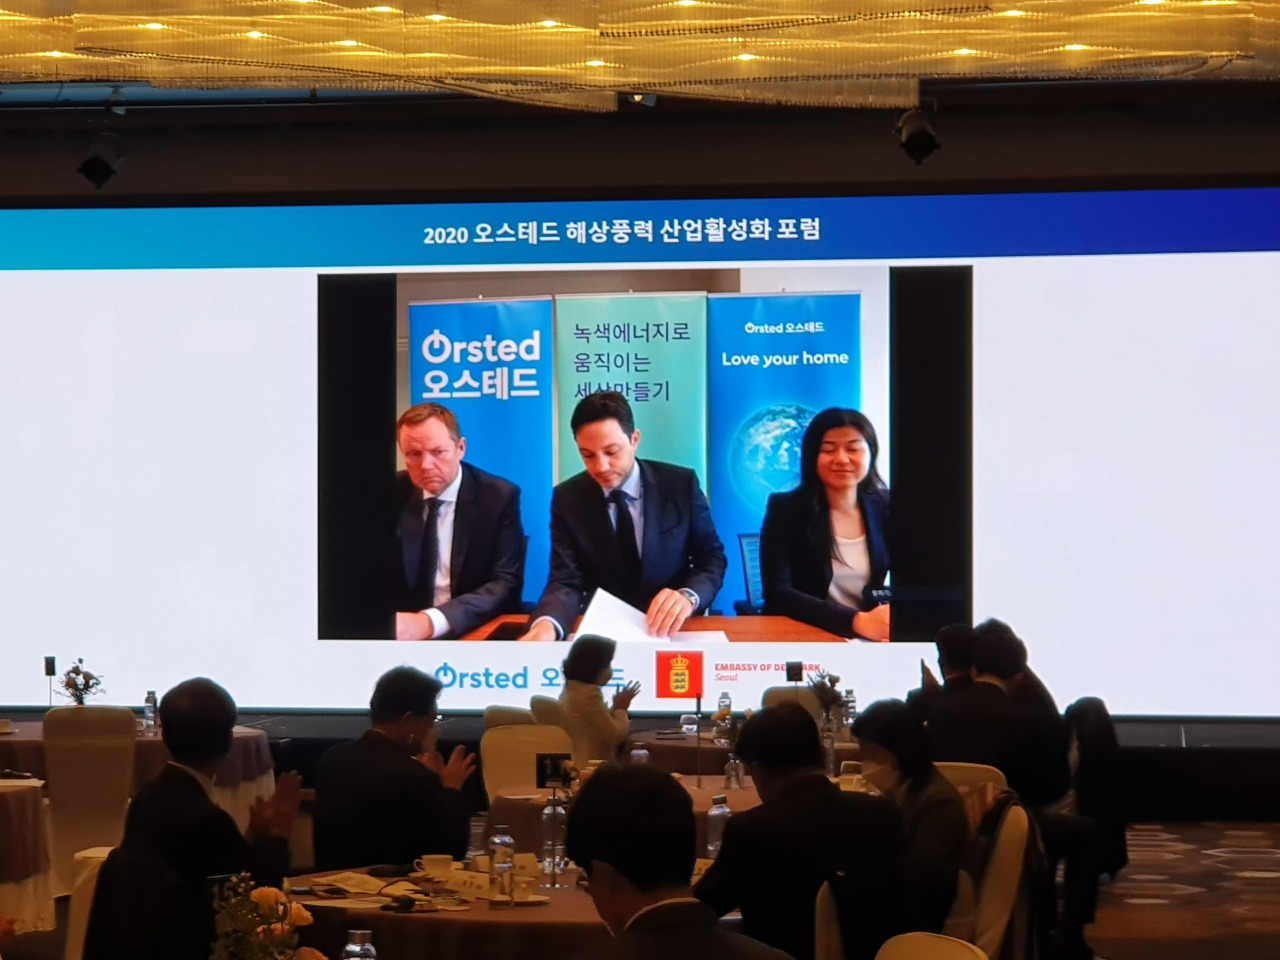 Orsted Asia-Pacific president Matthias Bausenwein (center) speaks to participants of Orsted 2020 Offshore Wind Industry Promotion Forum held at Conrad Seoul, located in Yeouido, western Seoul, Tuesday. (Kim Byung-wook/The Korea Herald)